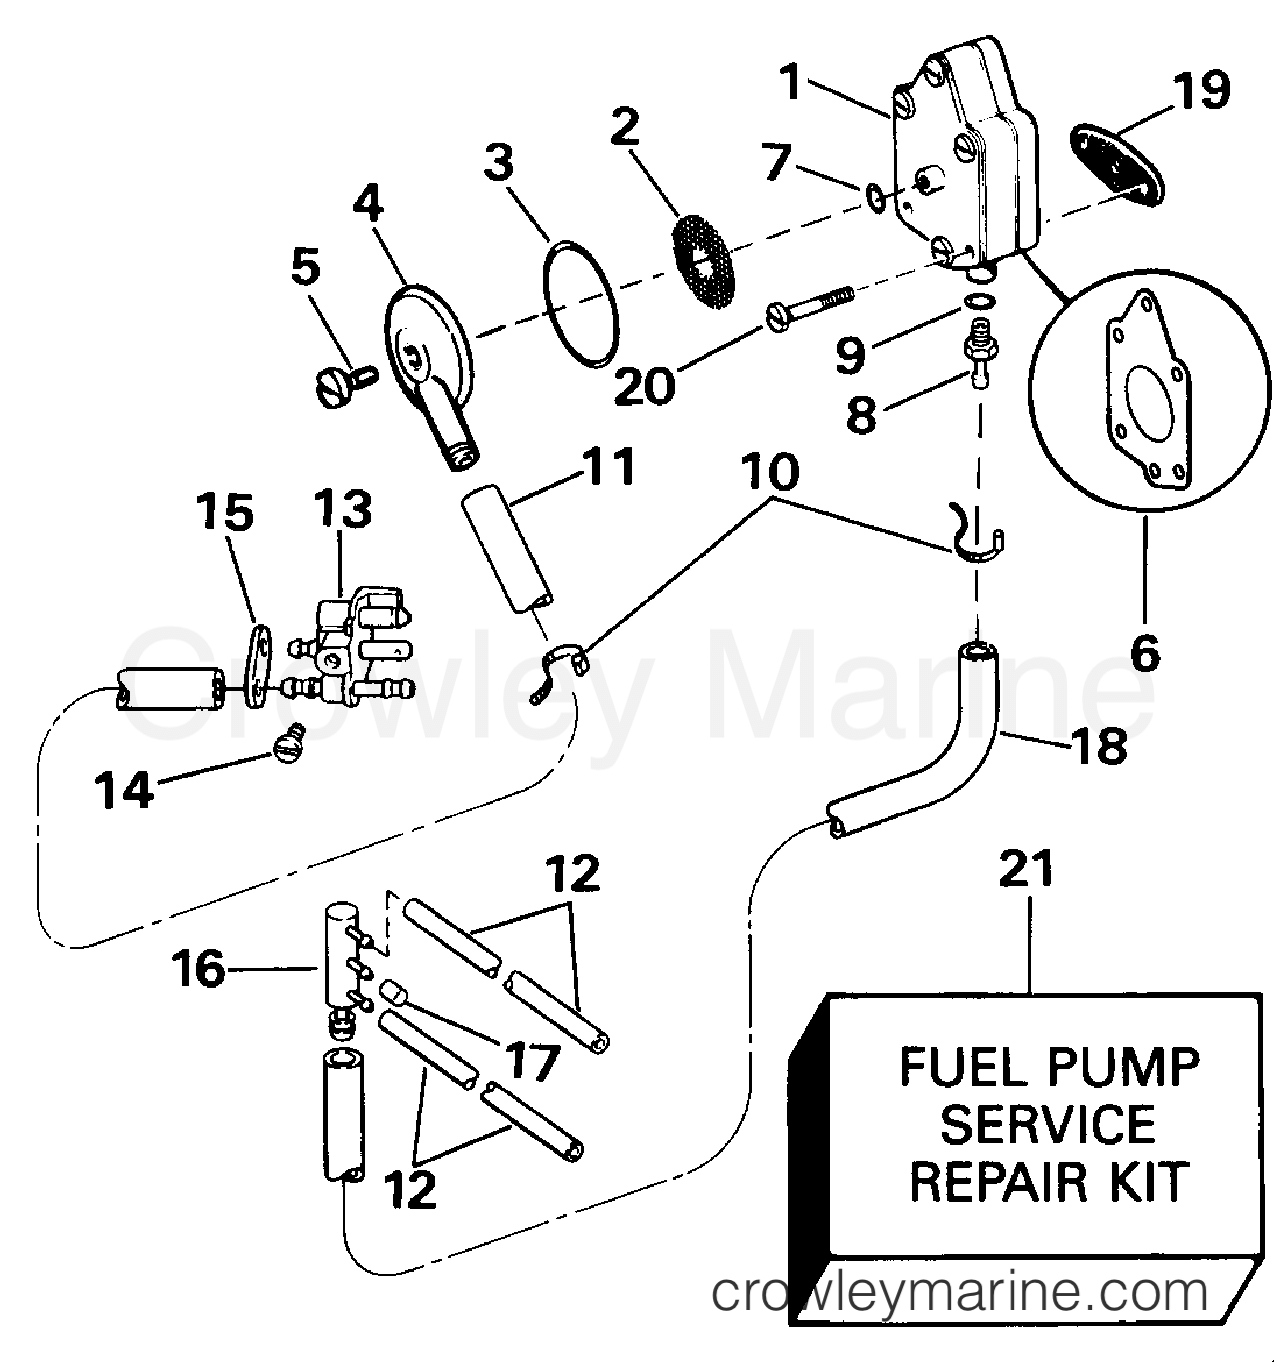 Fuel Pump And Filter Late Production